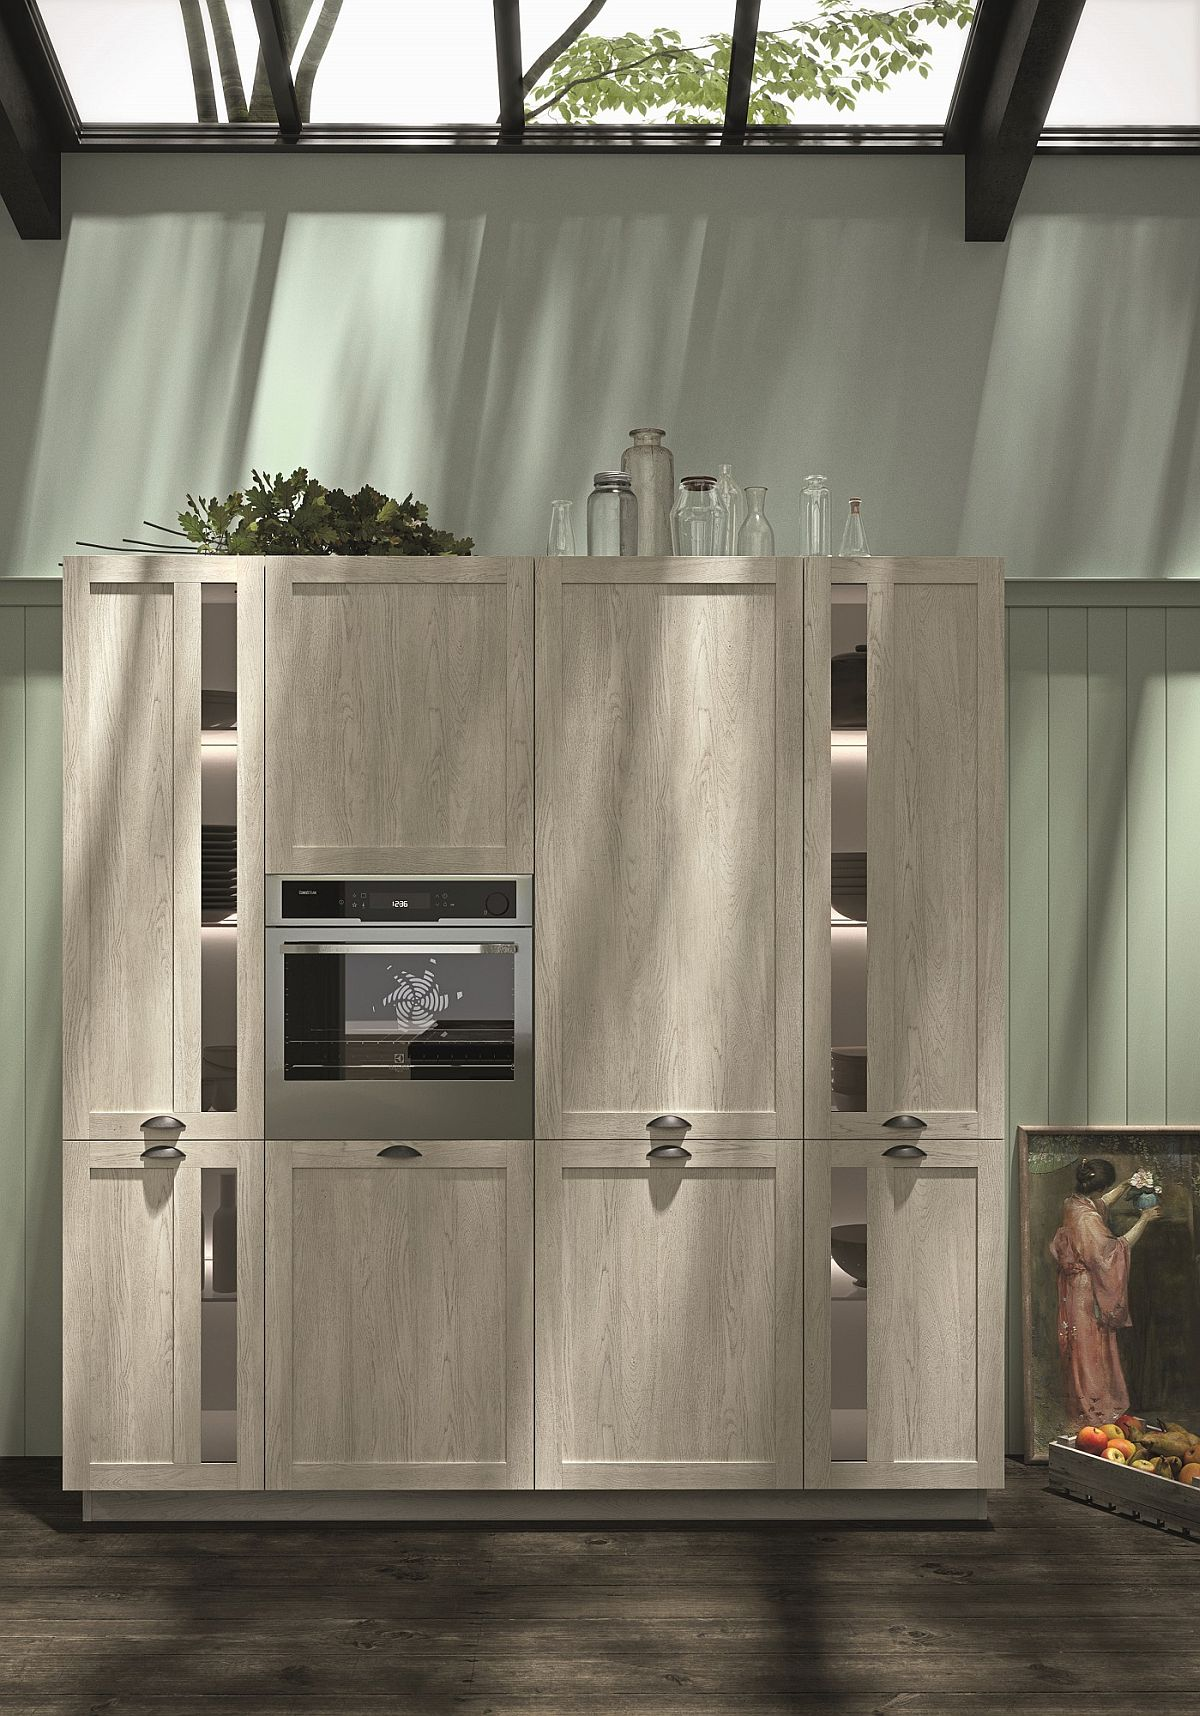 Combining-contemporary-appliances-with-classic-kitchen-units